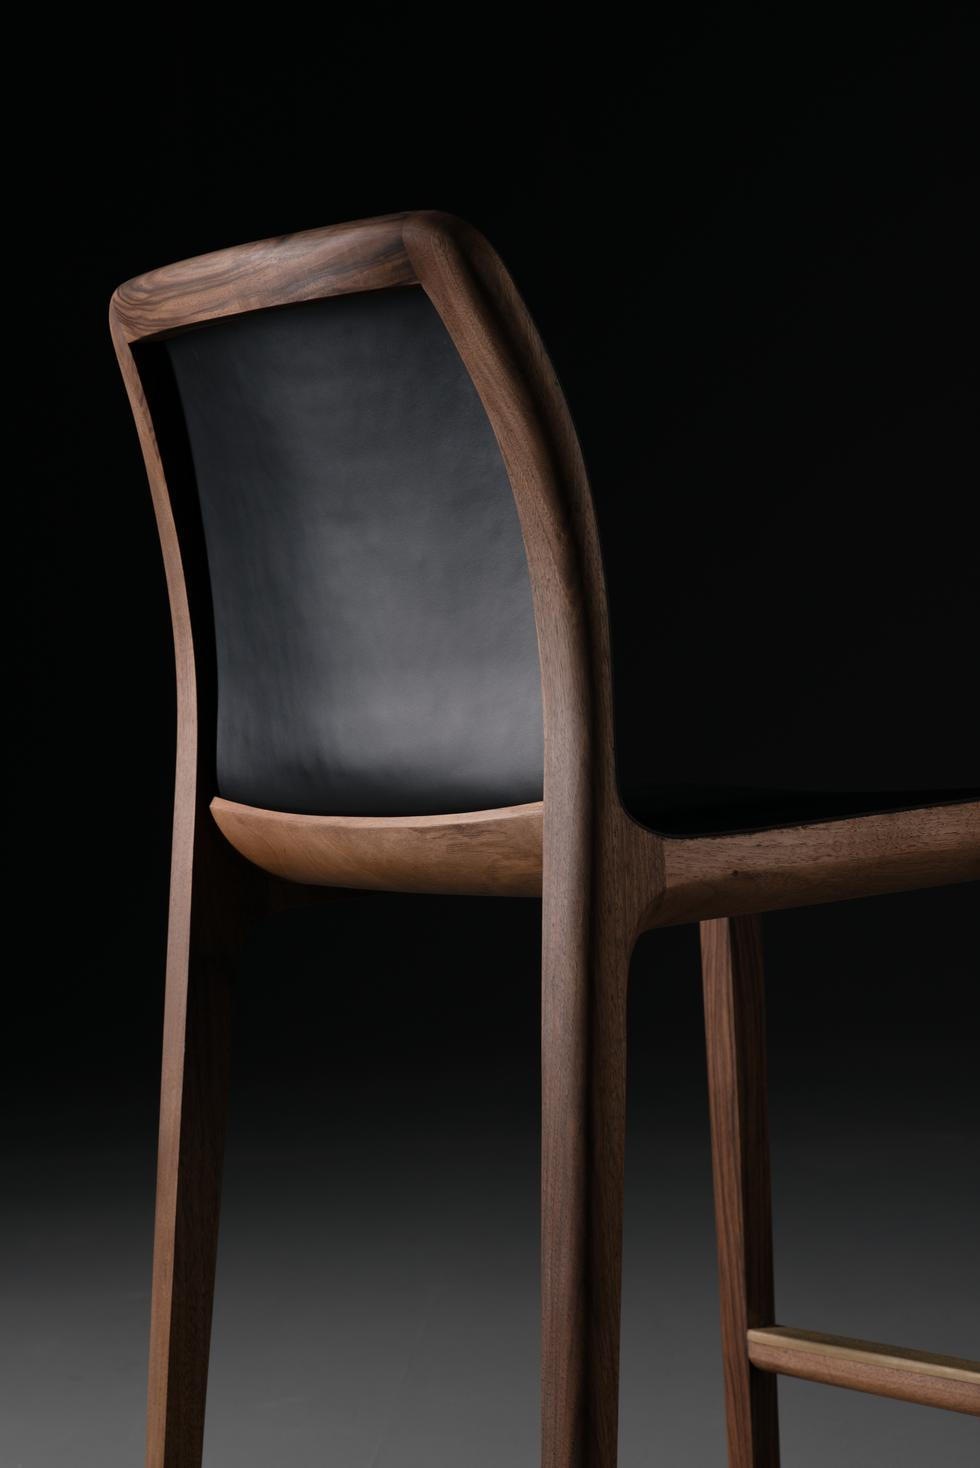 Artisan invito bar chair Artisan home furniture bar stools